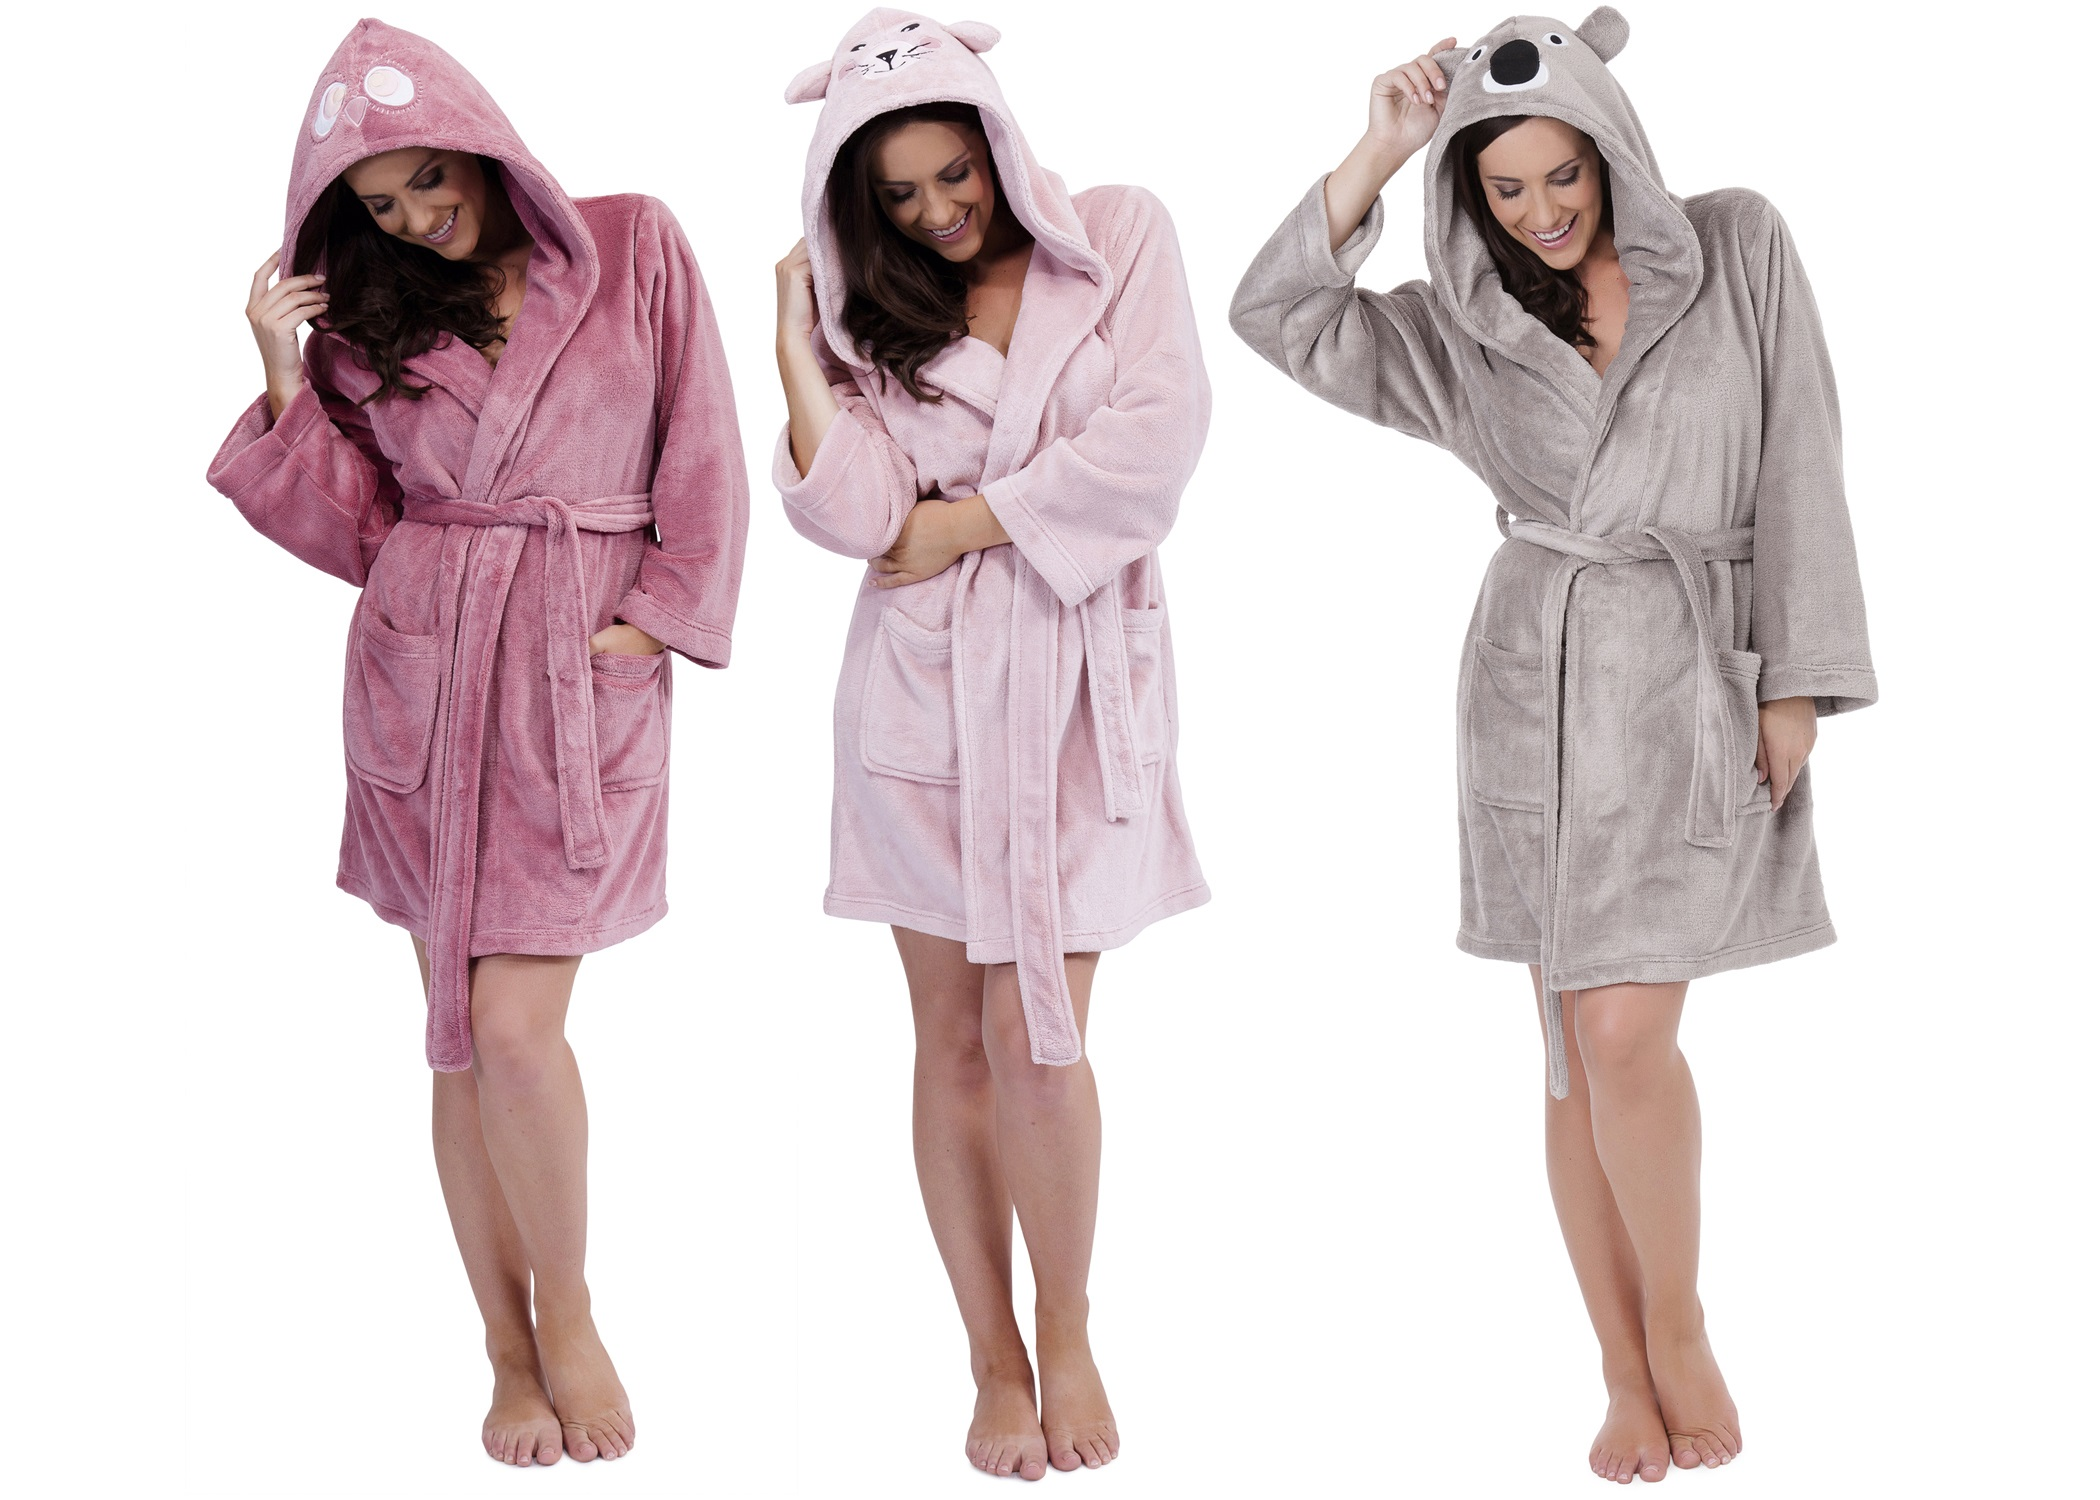 49e504e758 Womens Short Hooded Animal Ears Bath Robes Dressing Gowns Housecoat ...